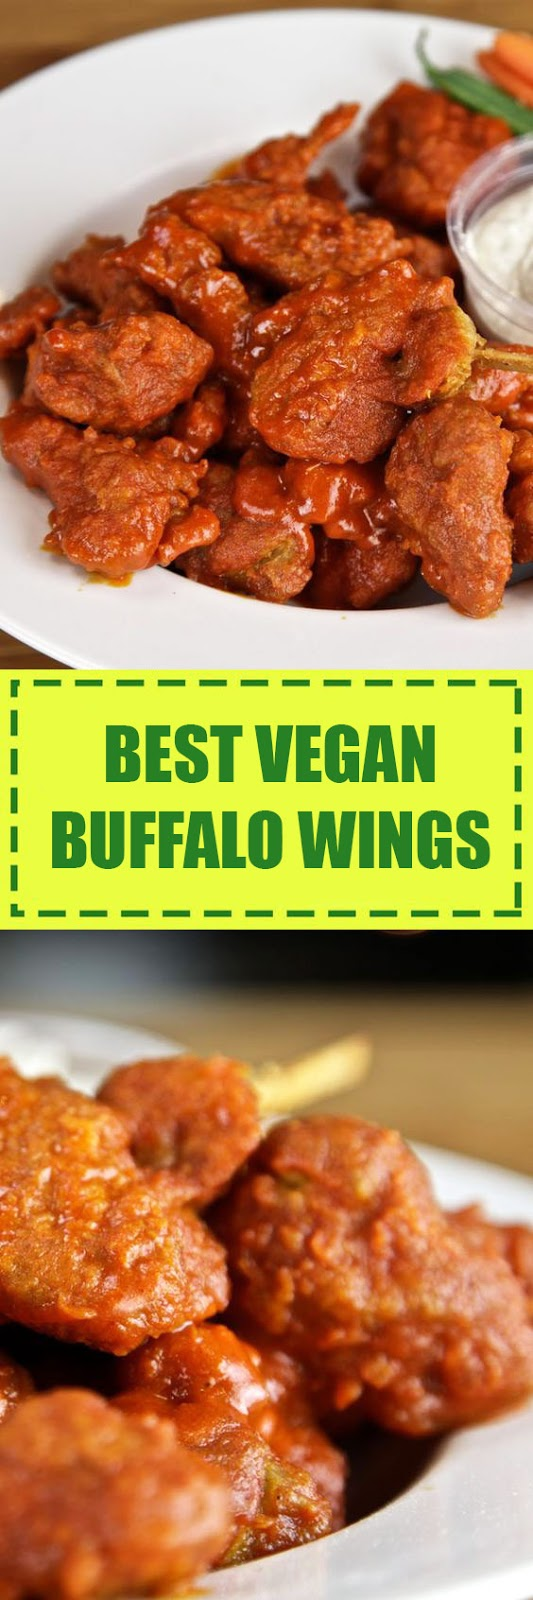 Vegan Buffalo Wings Recipe